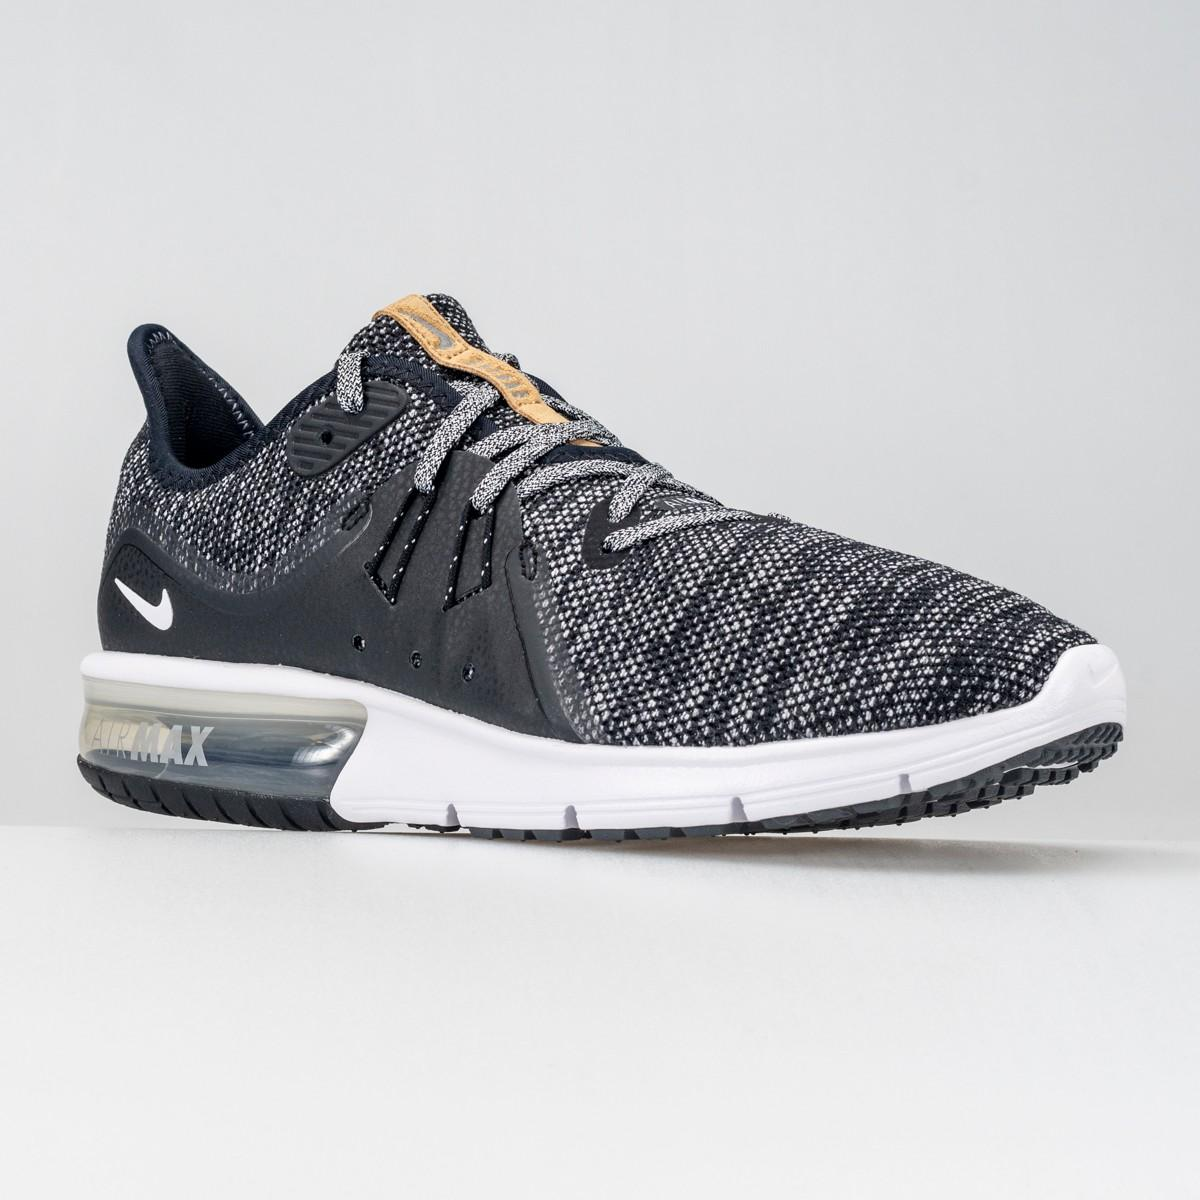 SCARPA UOMO NIKE AIR MAX SEQUENT 3 921694 011 BLACK WHITE